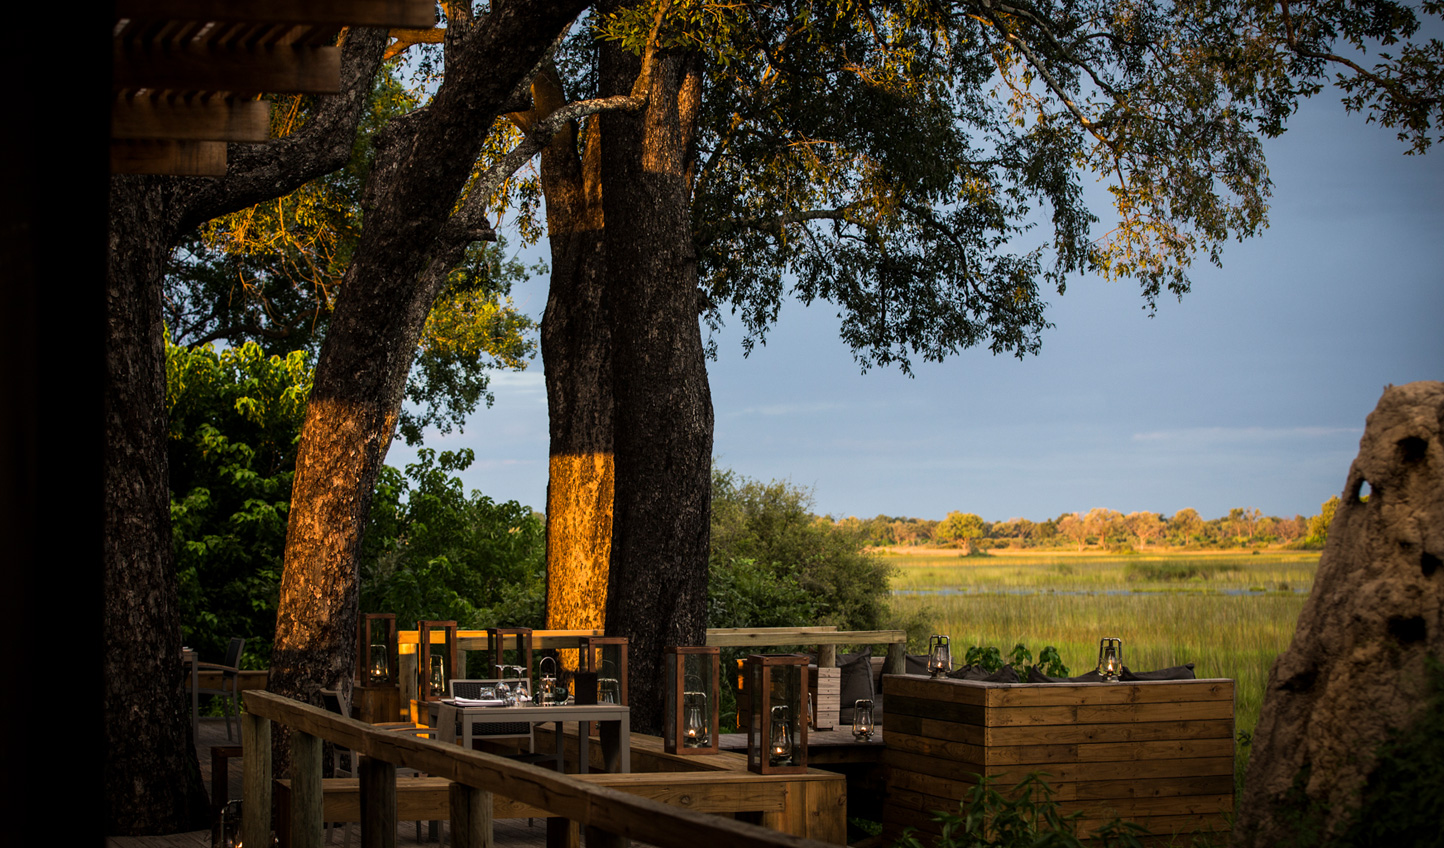 Settled within the heart of the Okavango Delta